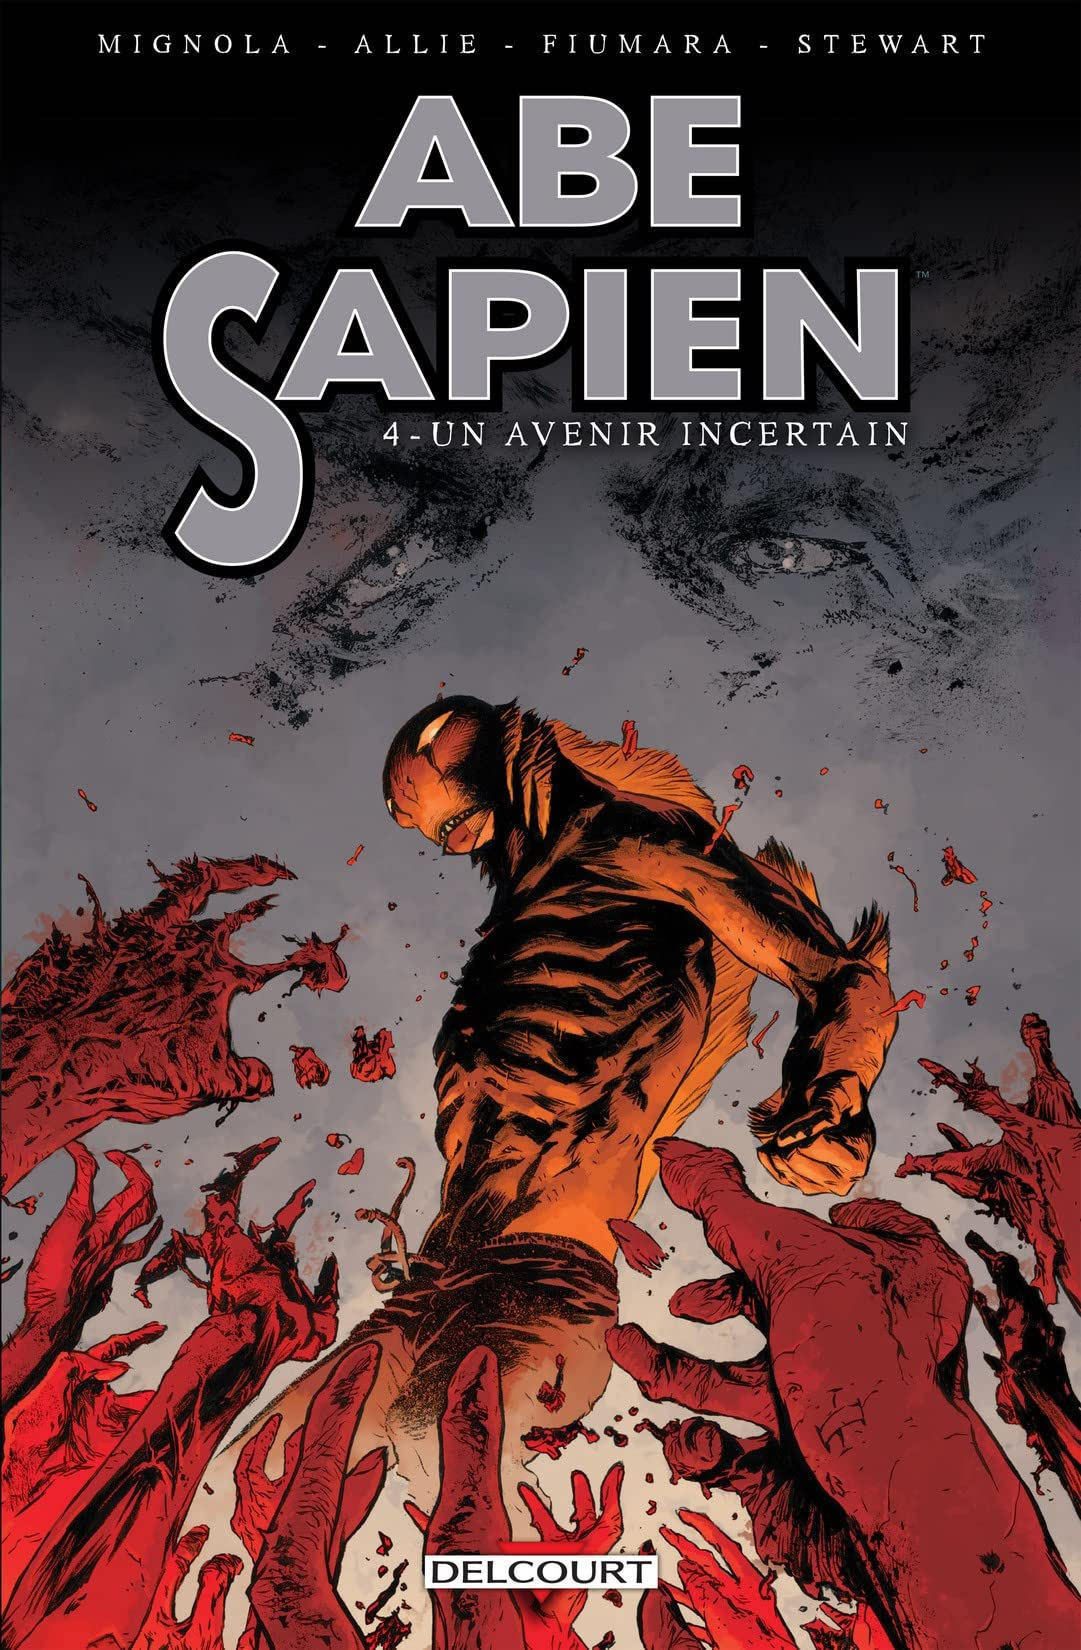 Abe Sapien Vol. 4: Un avenir incertain